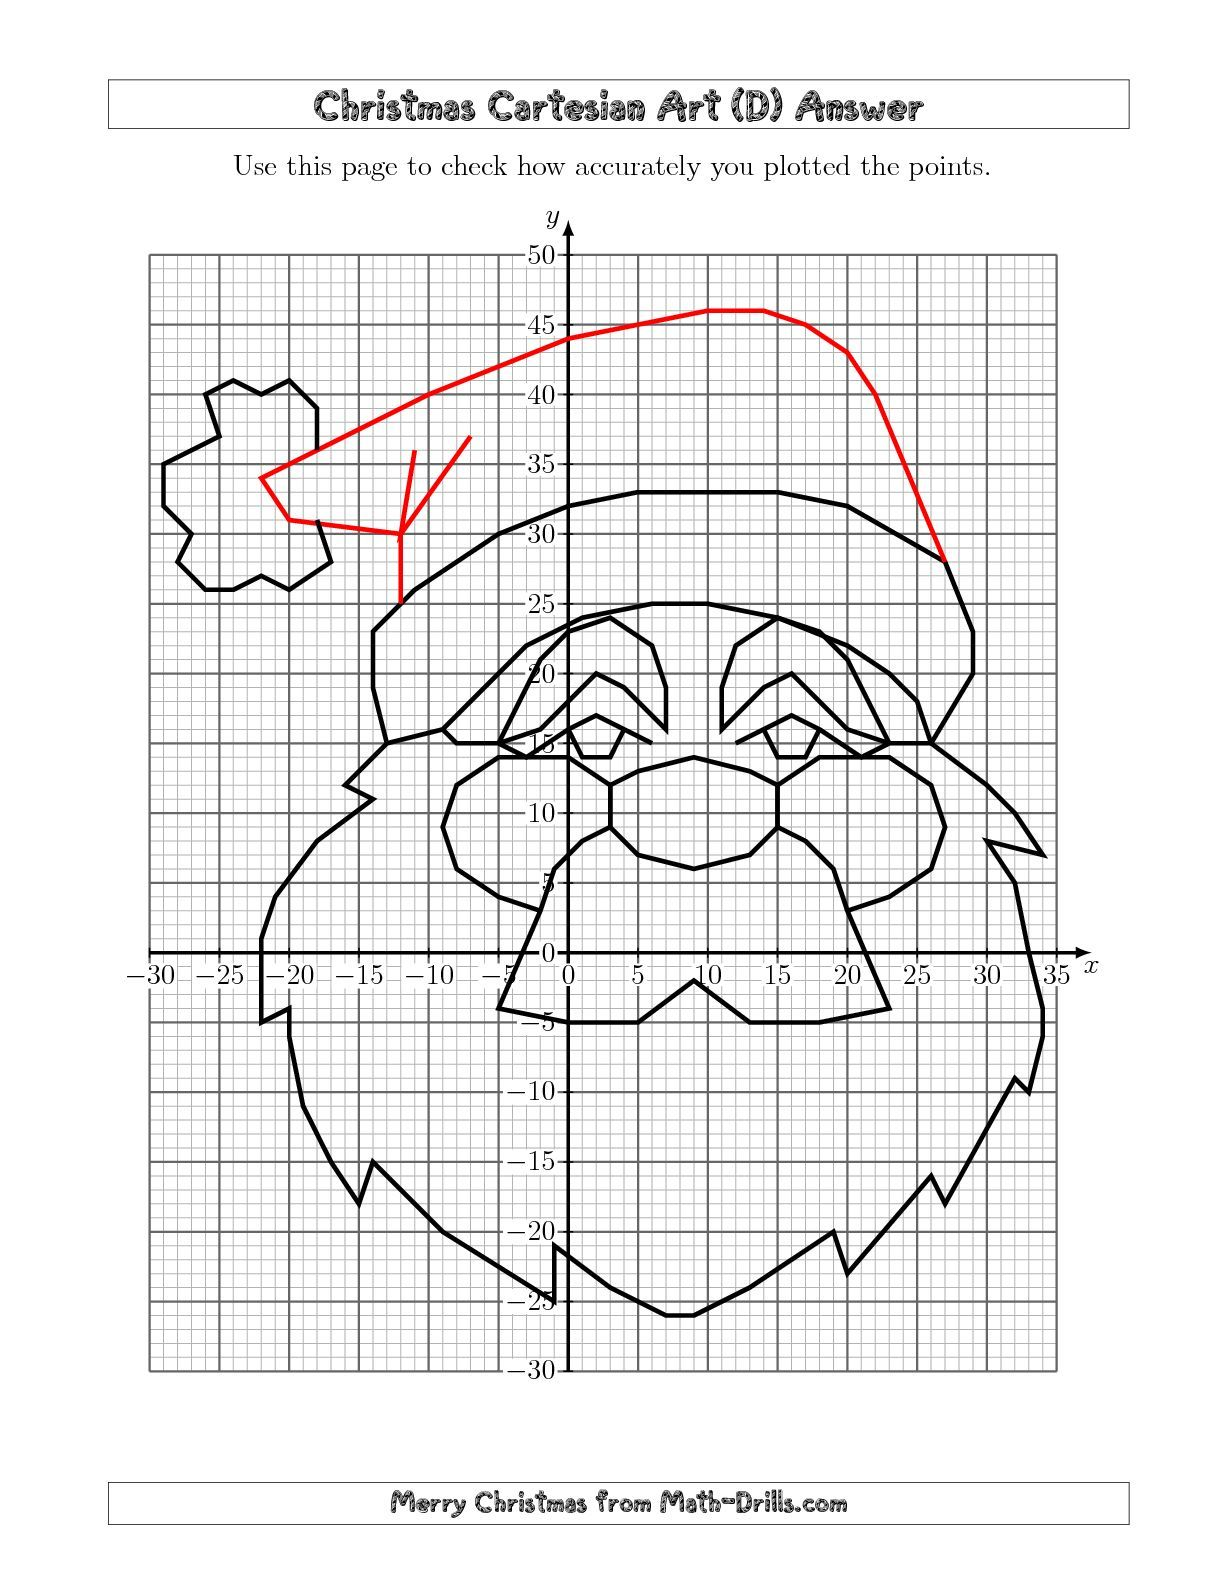 The Christmas Cartesian Art Santa D Math Worksheet From